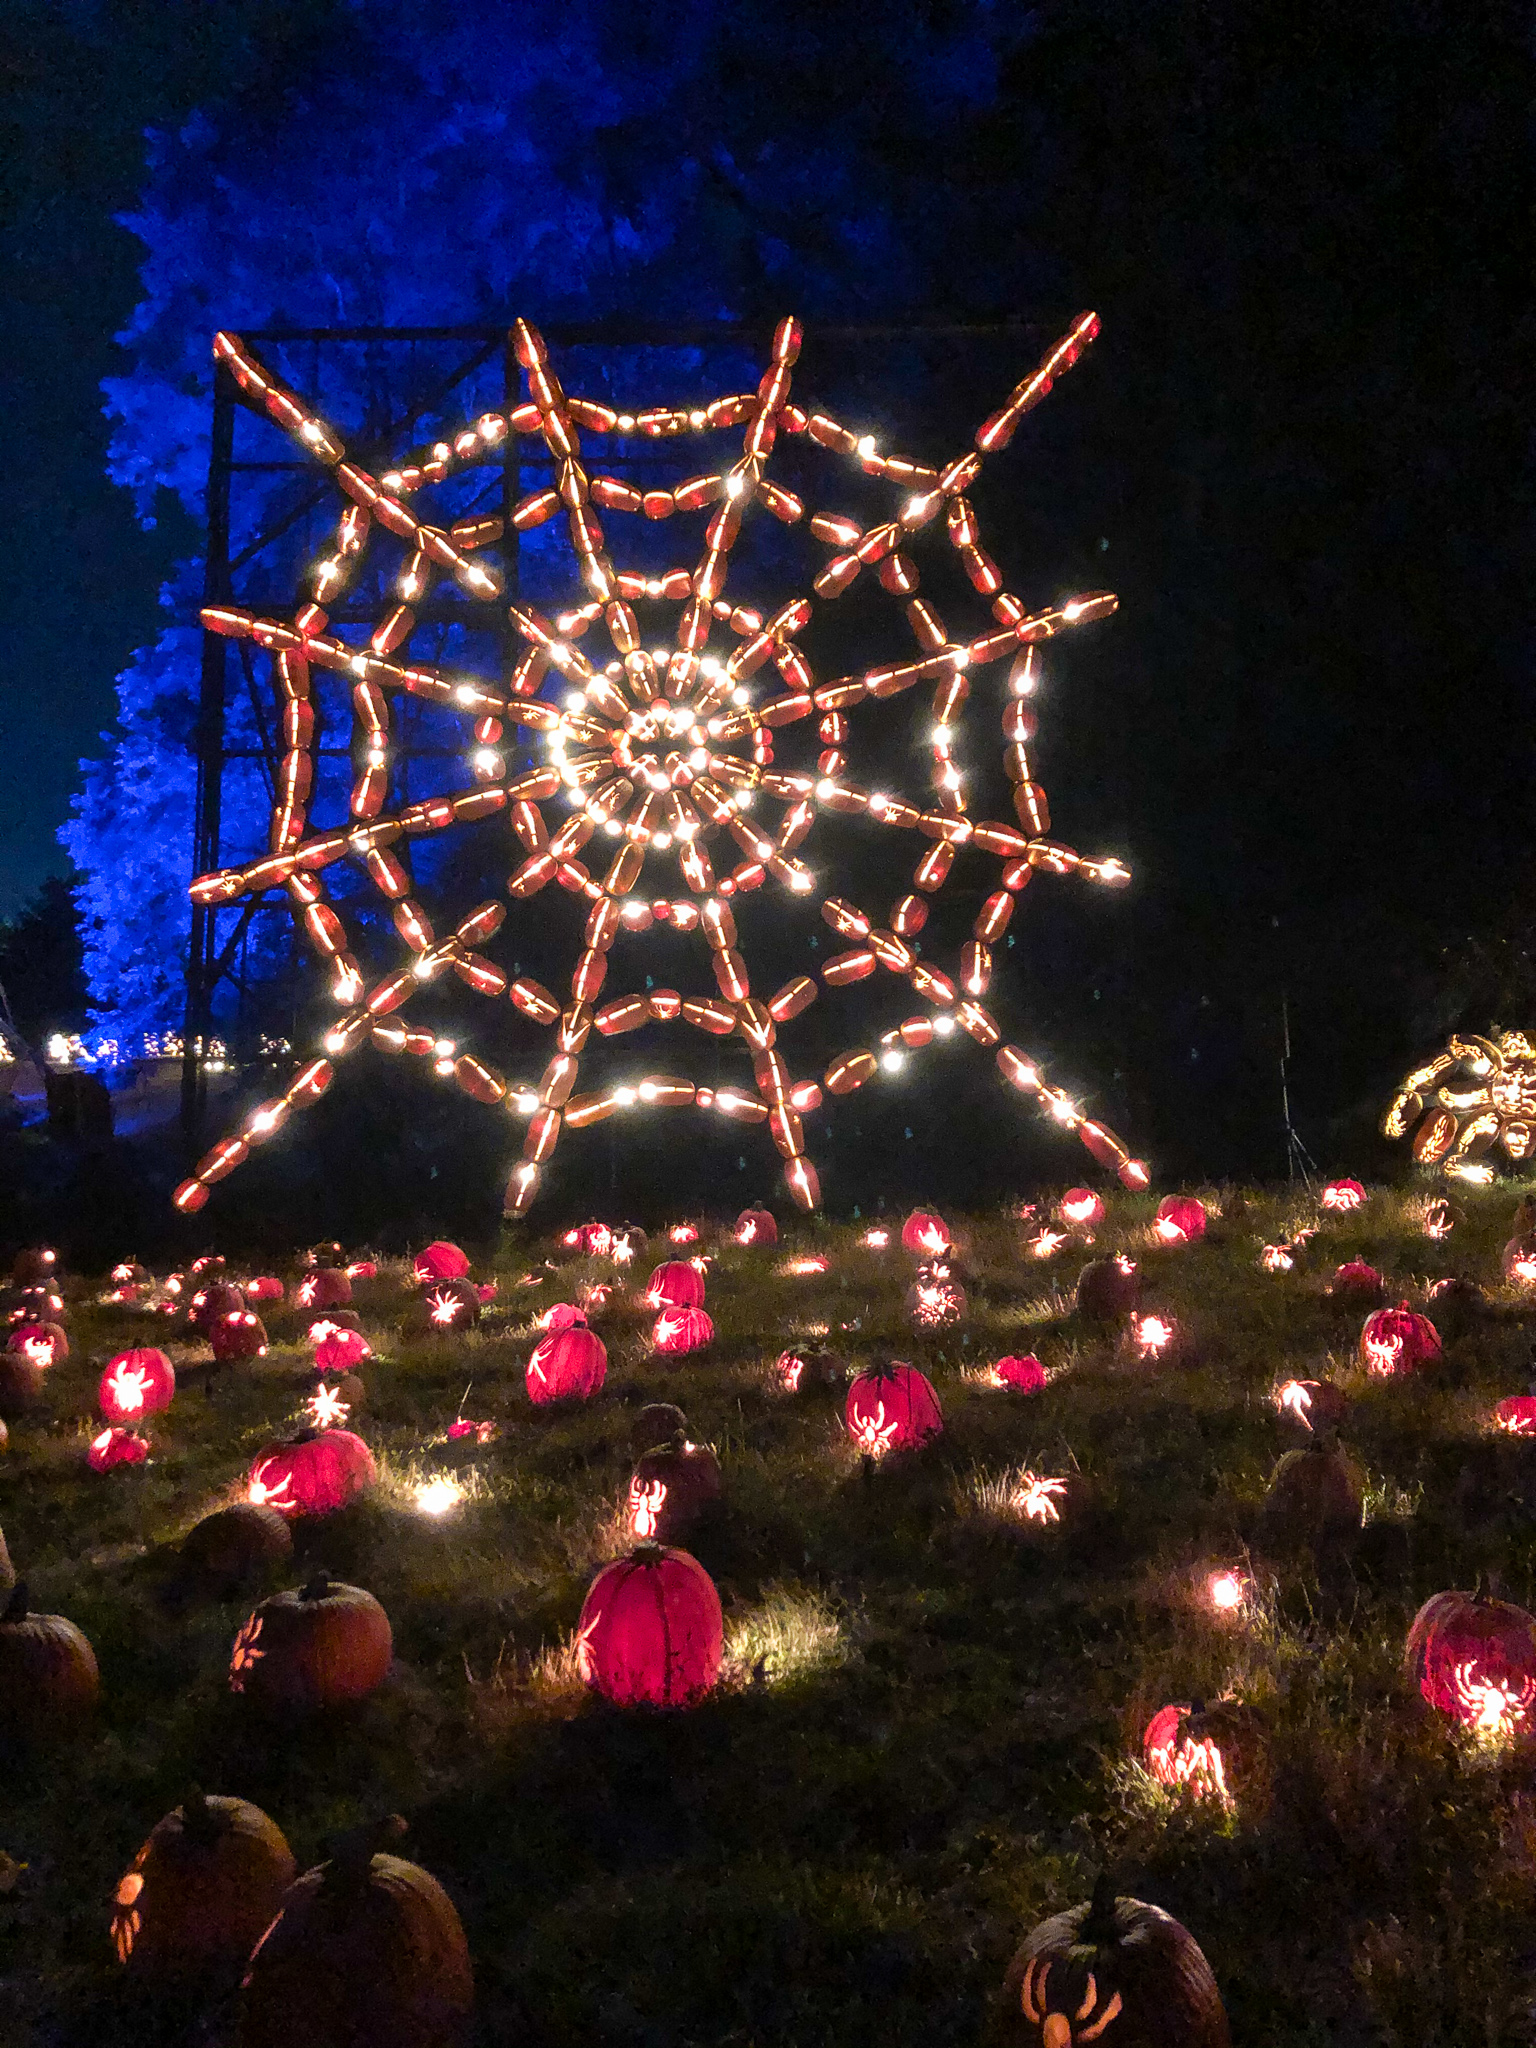 things to do in sleepy hollow new york: spiders and pumpkins